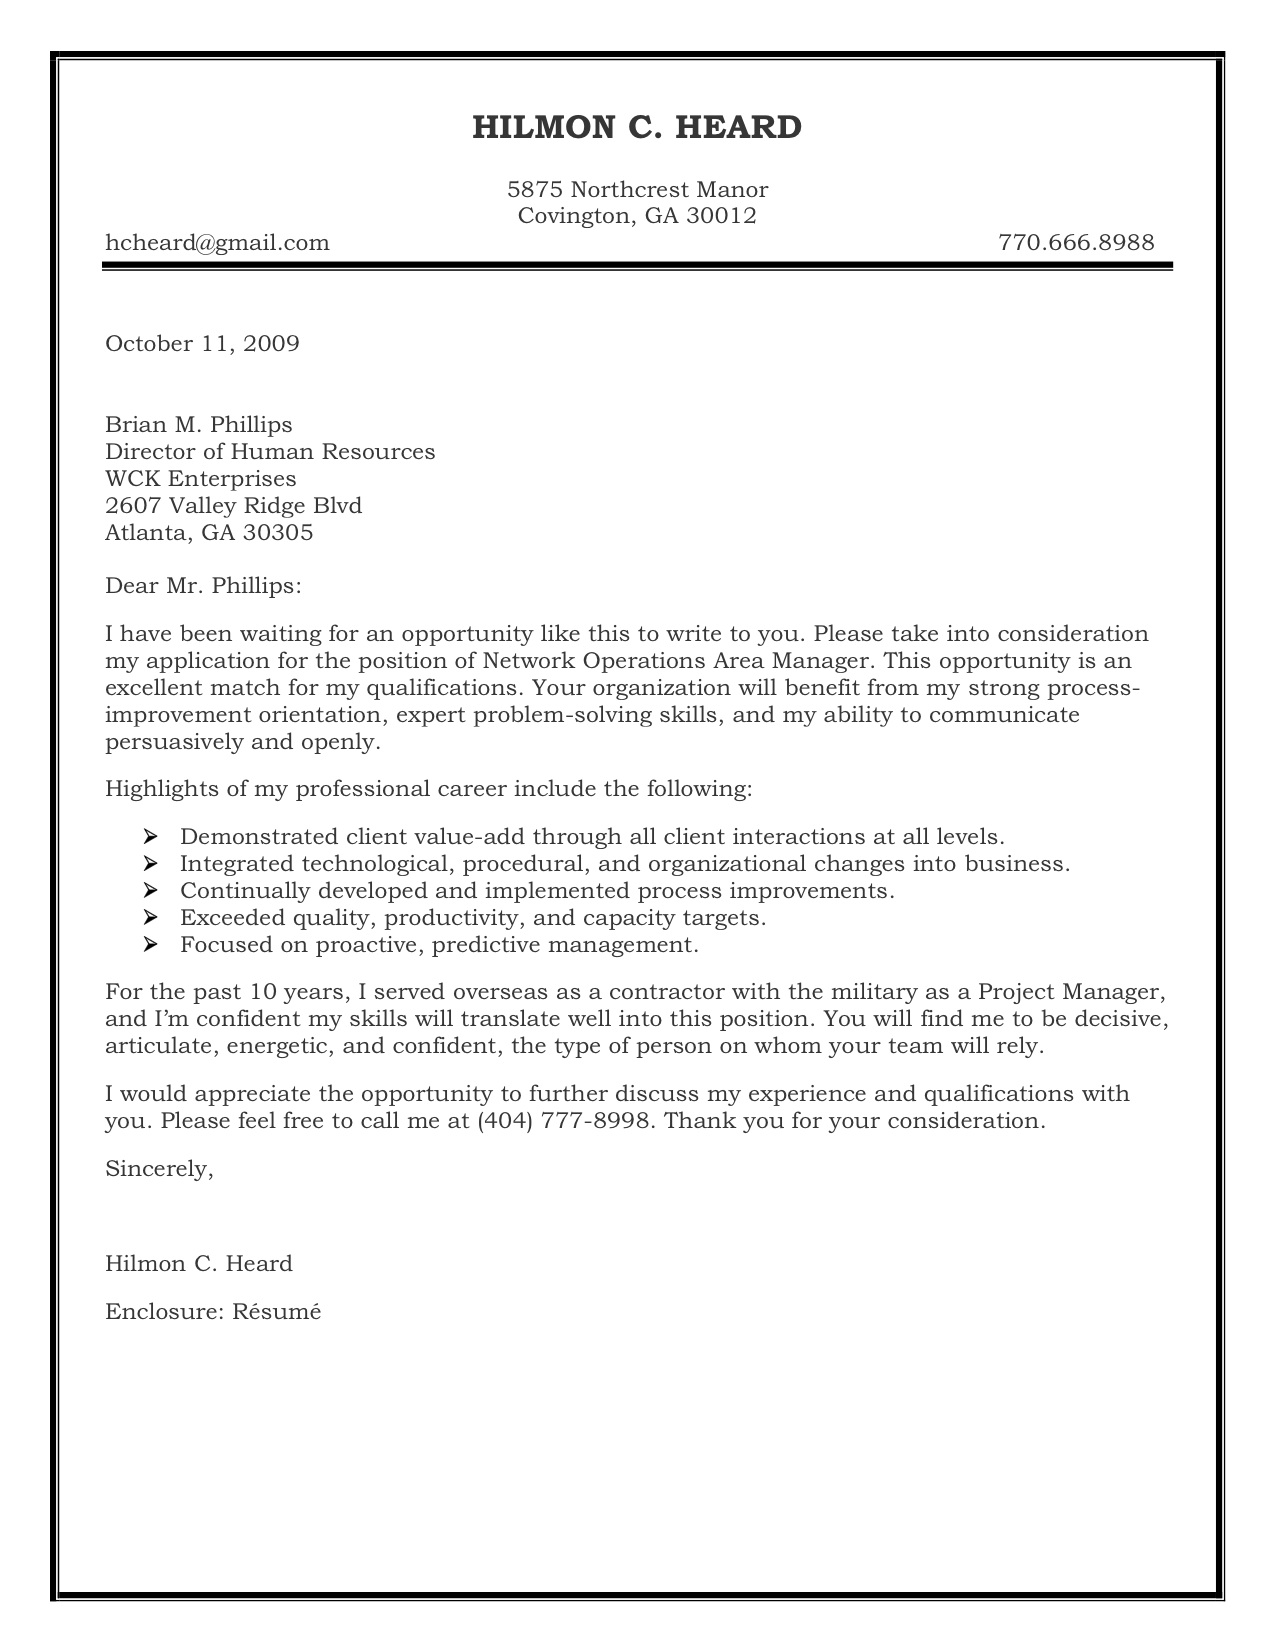 Best Ideas About Free Cover Letter Examples On Pinterest  Free Cover Letter Format